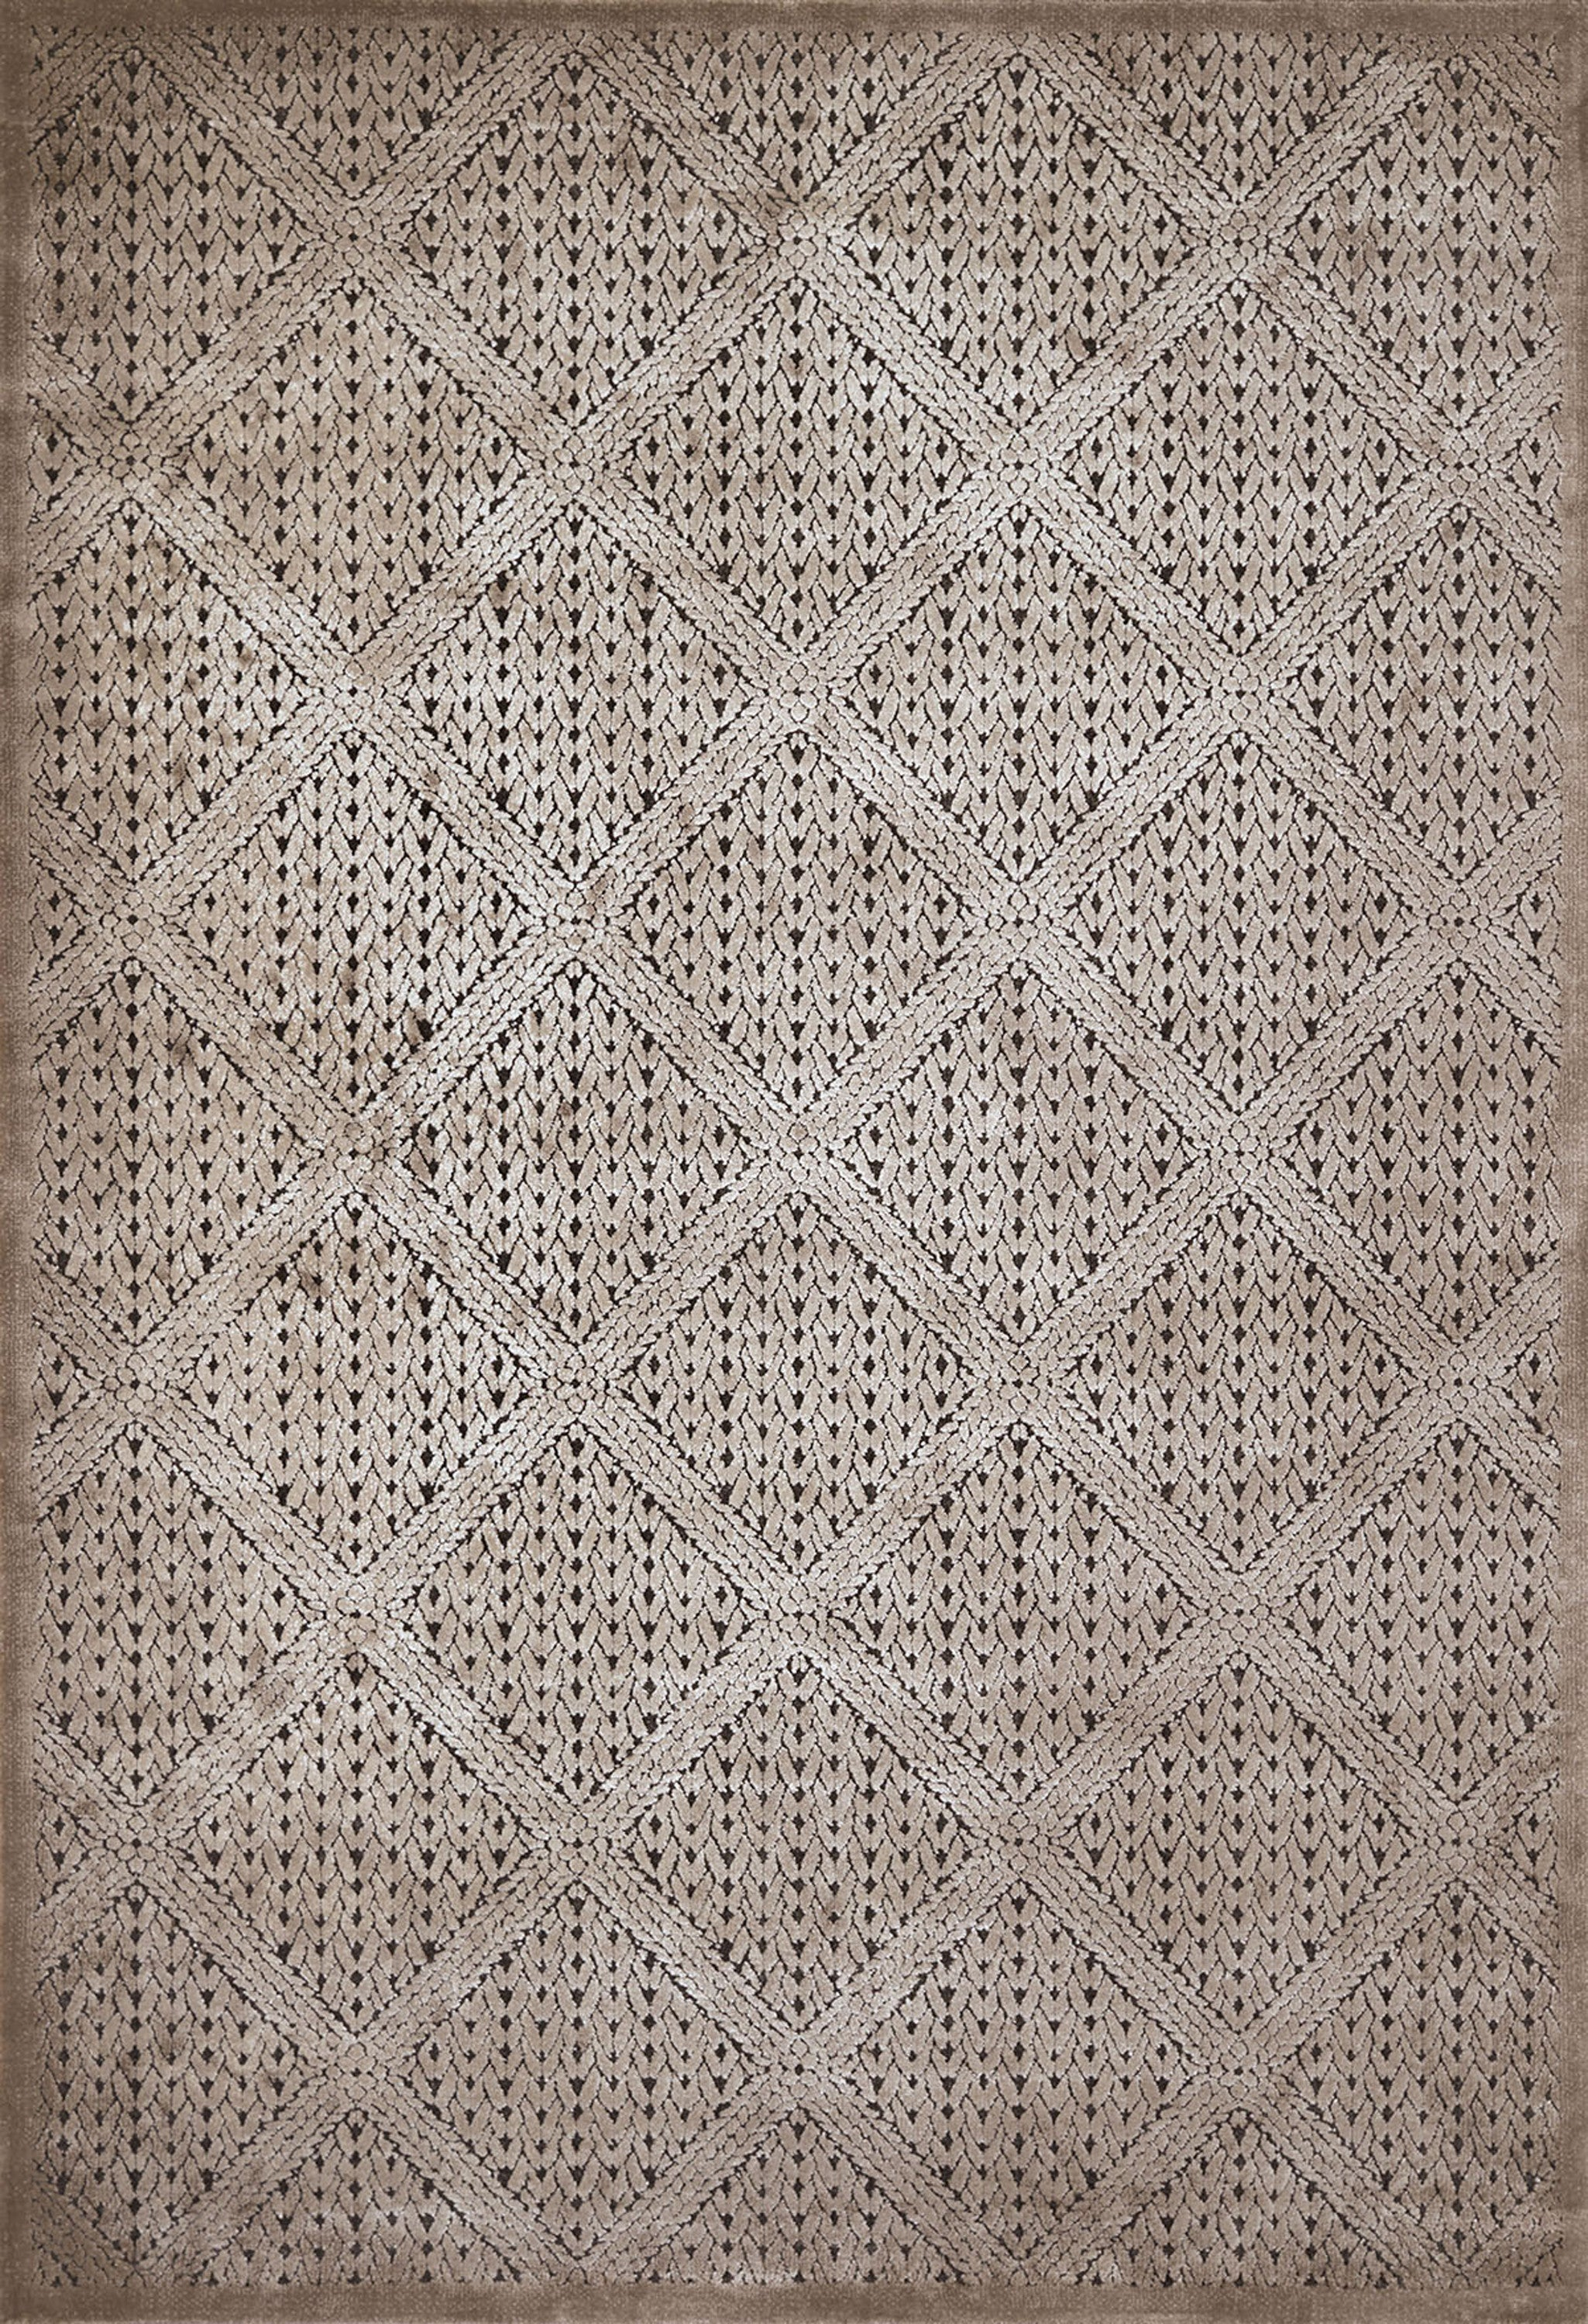 United Weavers - Weathered Treasure Rug Collection - DEVONSHIRE TAUPE (1800-40594)